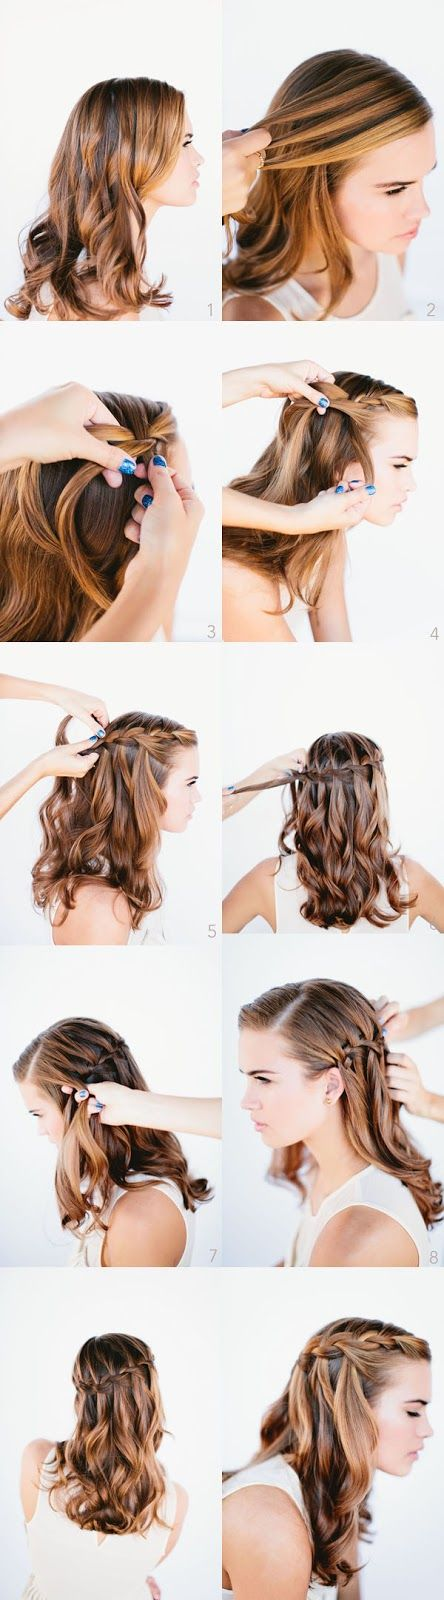 destilando glamour por los cuatro costados: Wedding Hairstyle: a waterfall braid